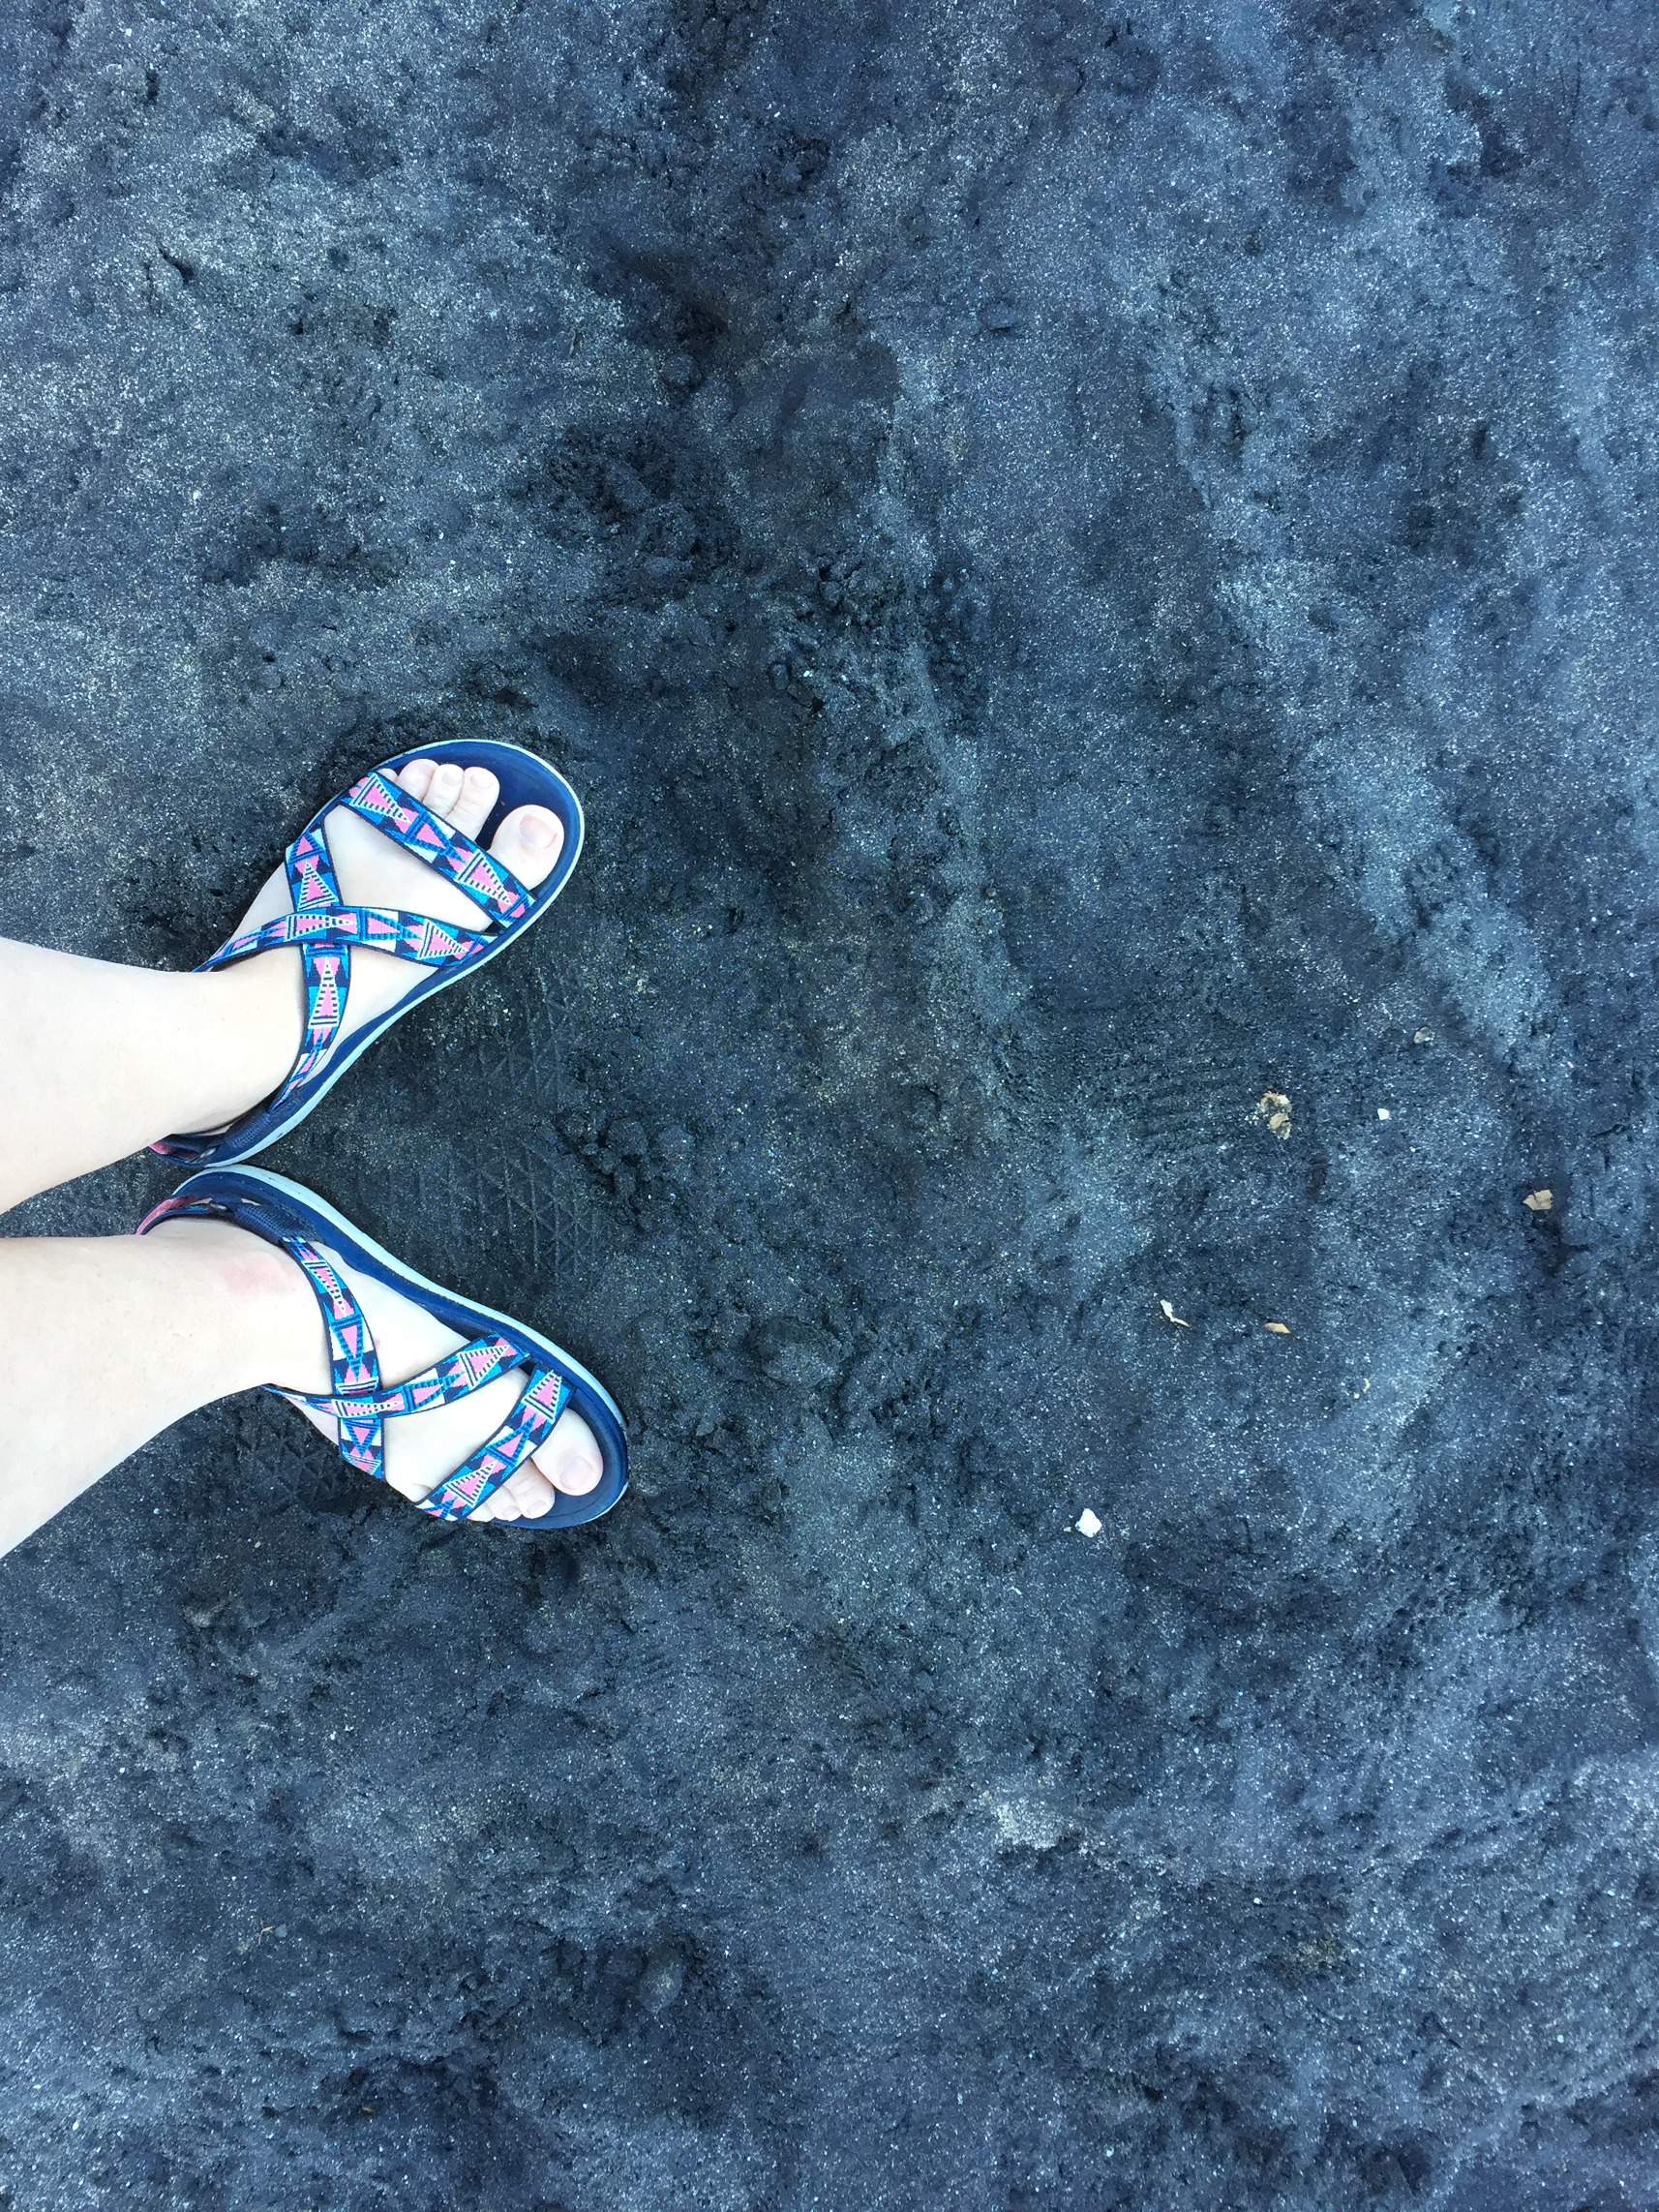 Costa Rica, Packing List, Water sandals